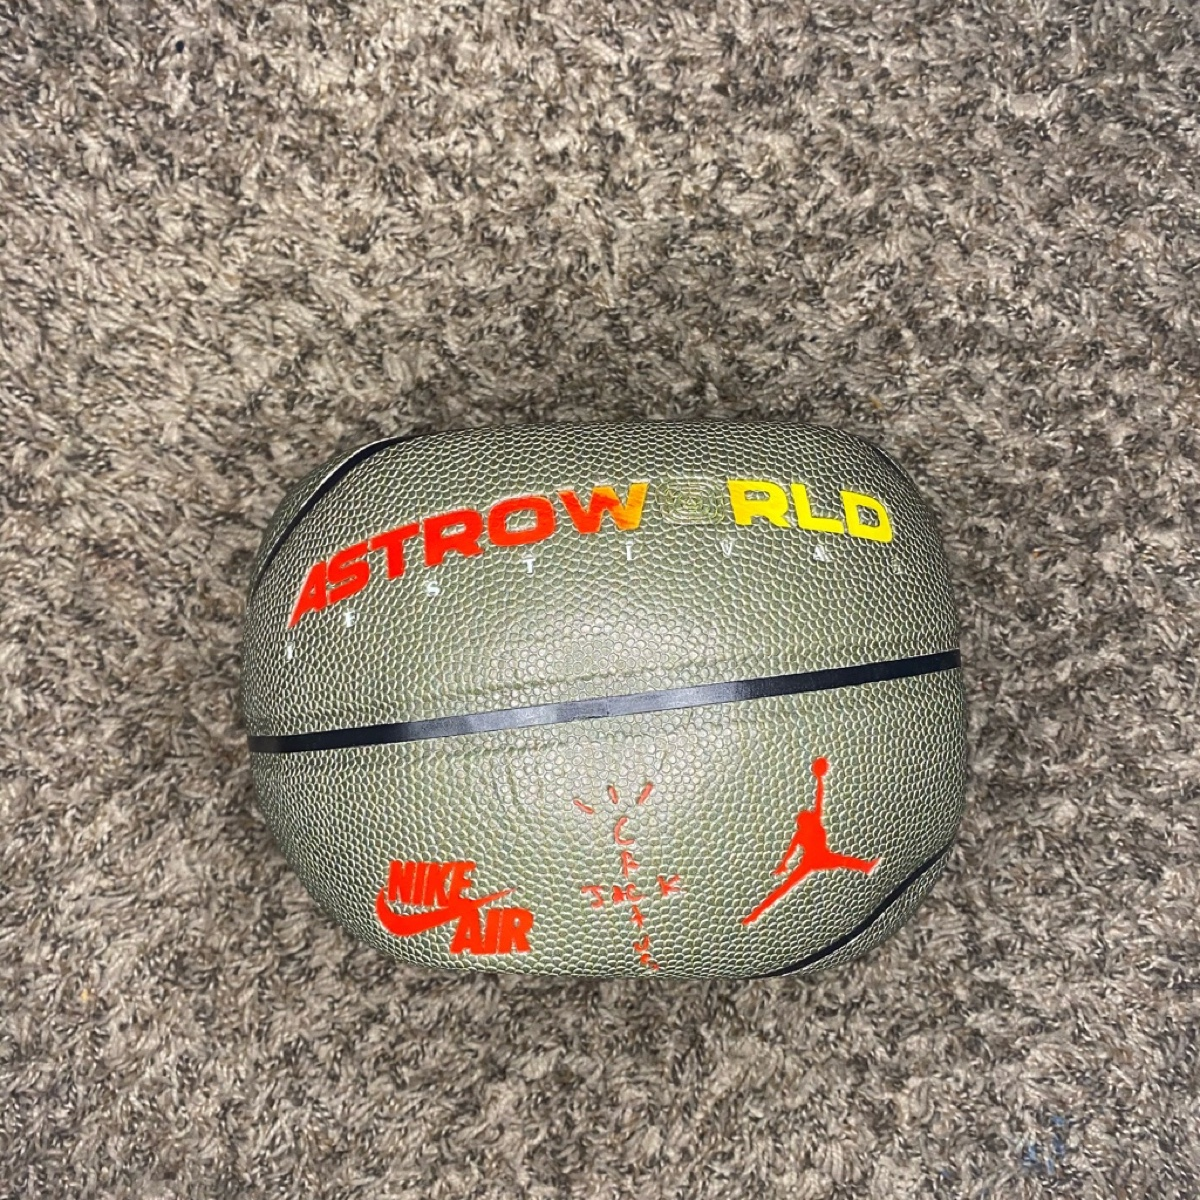 Travis scott astroworld olive green basketball sample